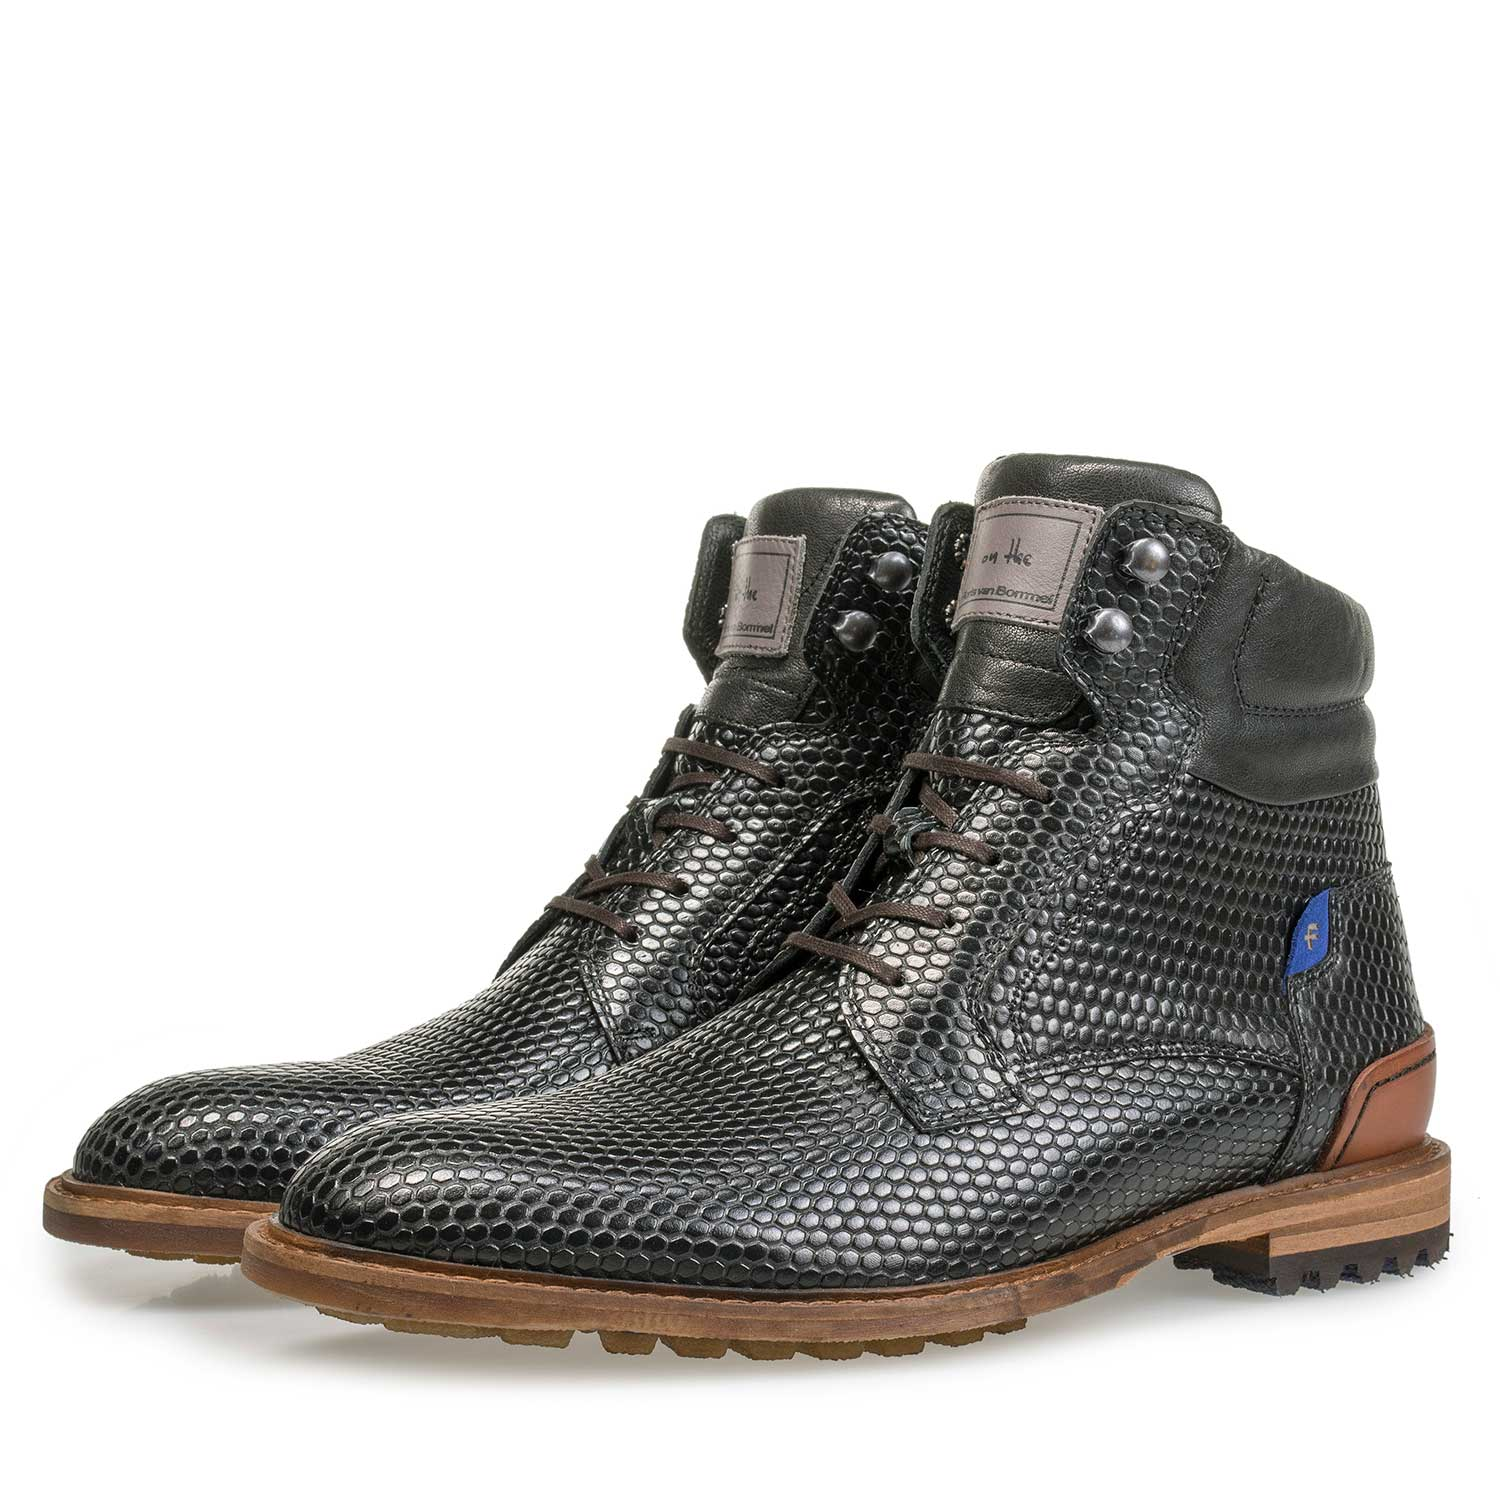 10234/06 - Black leather lace boot with structural print